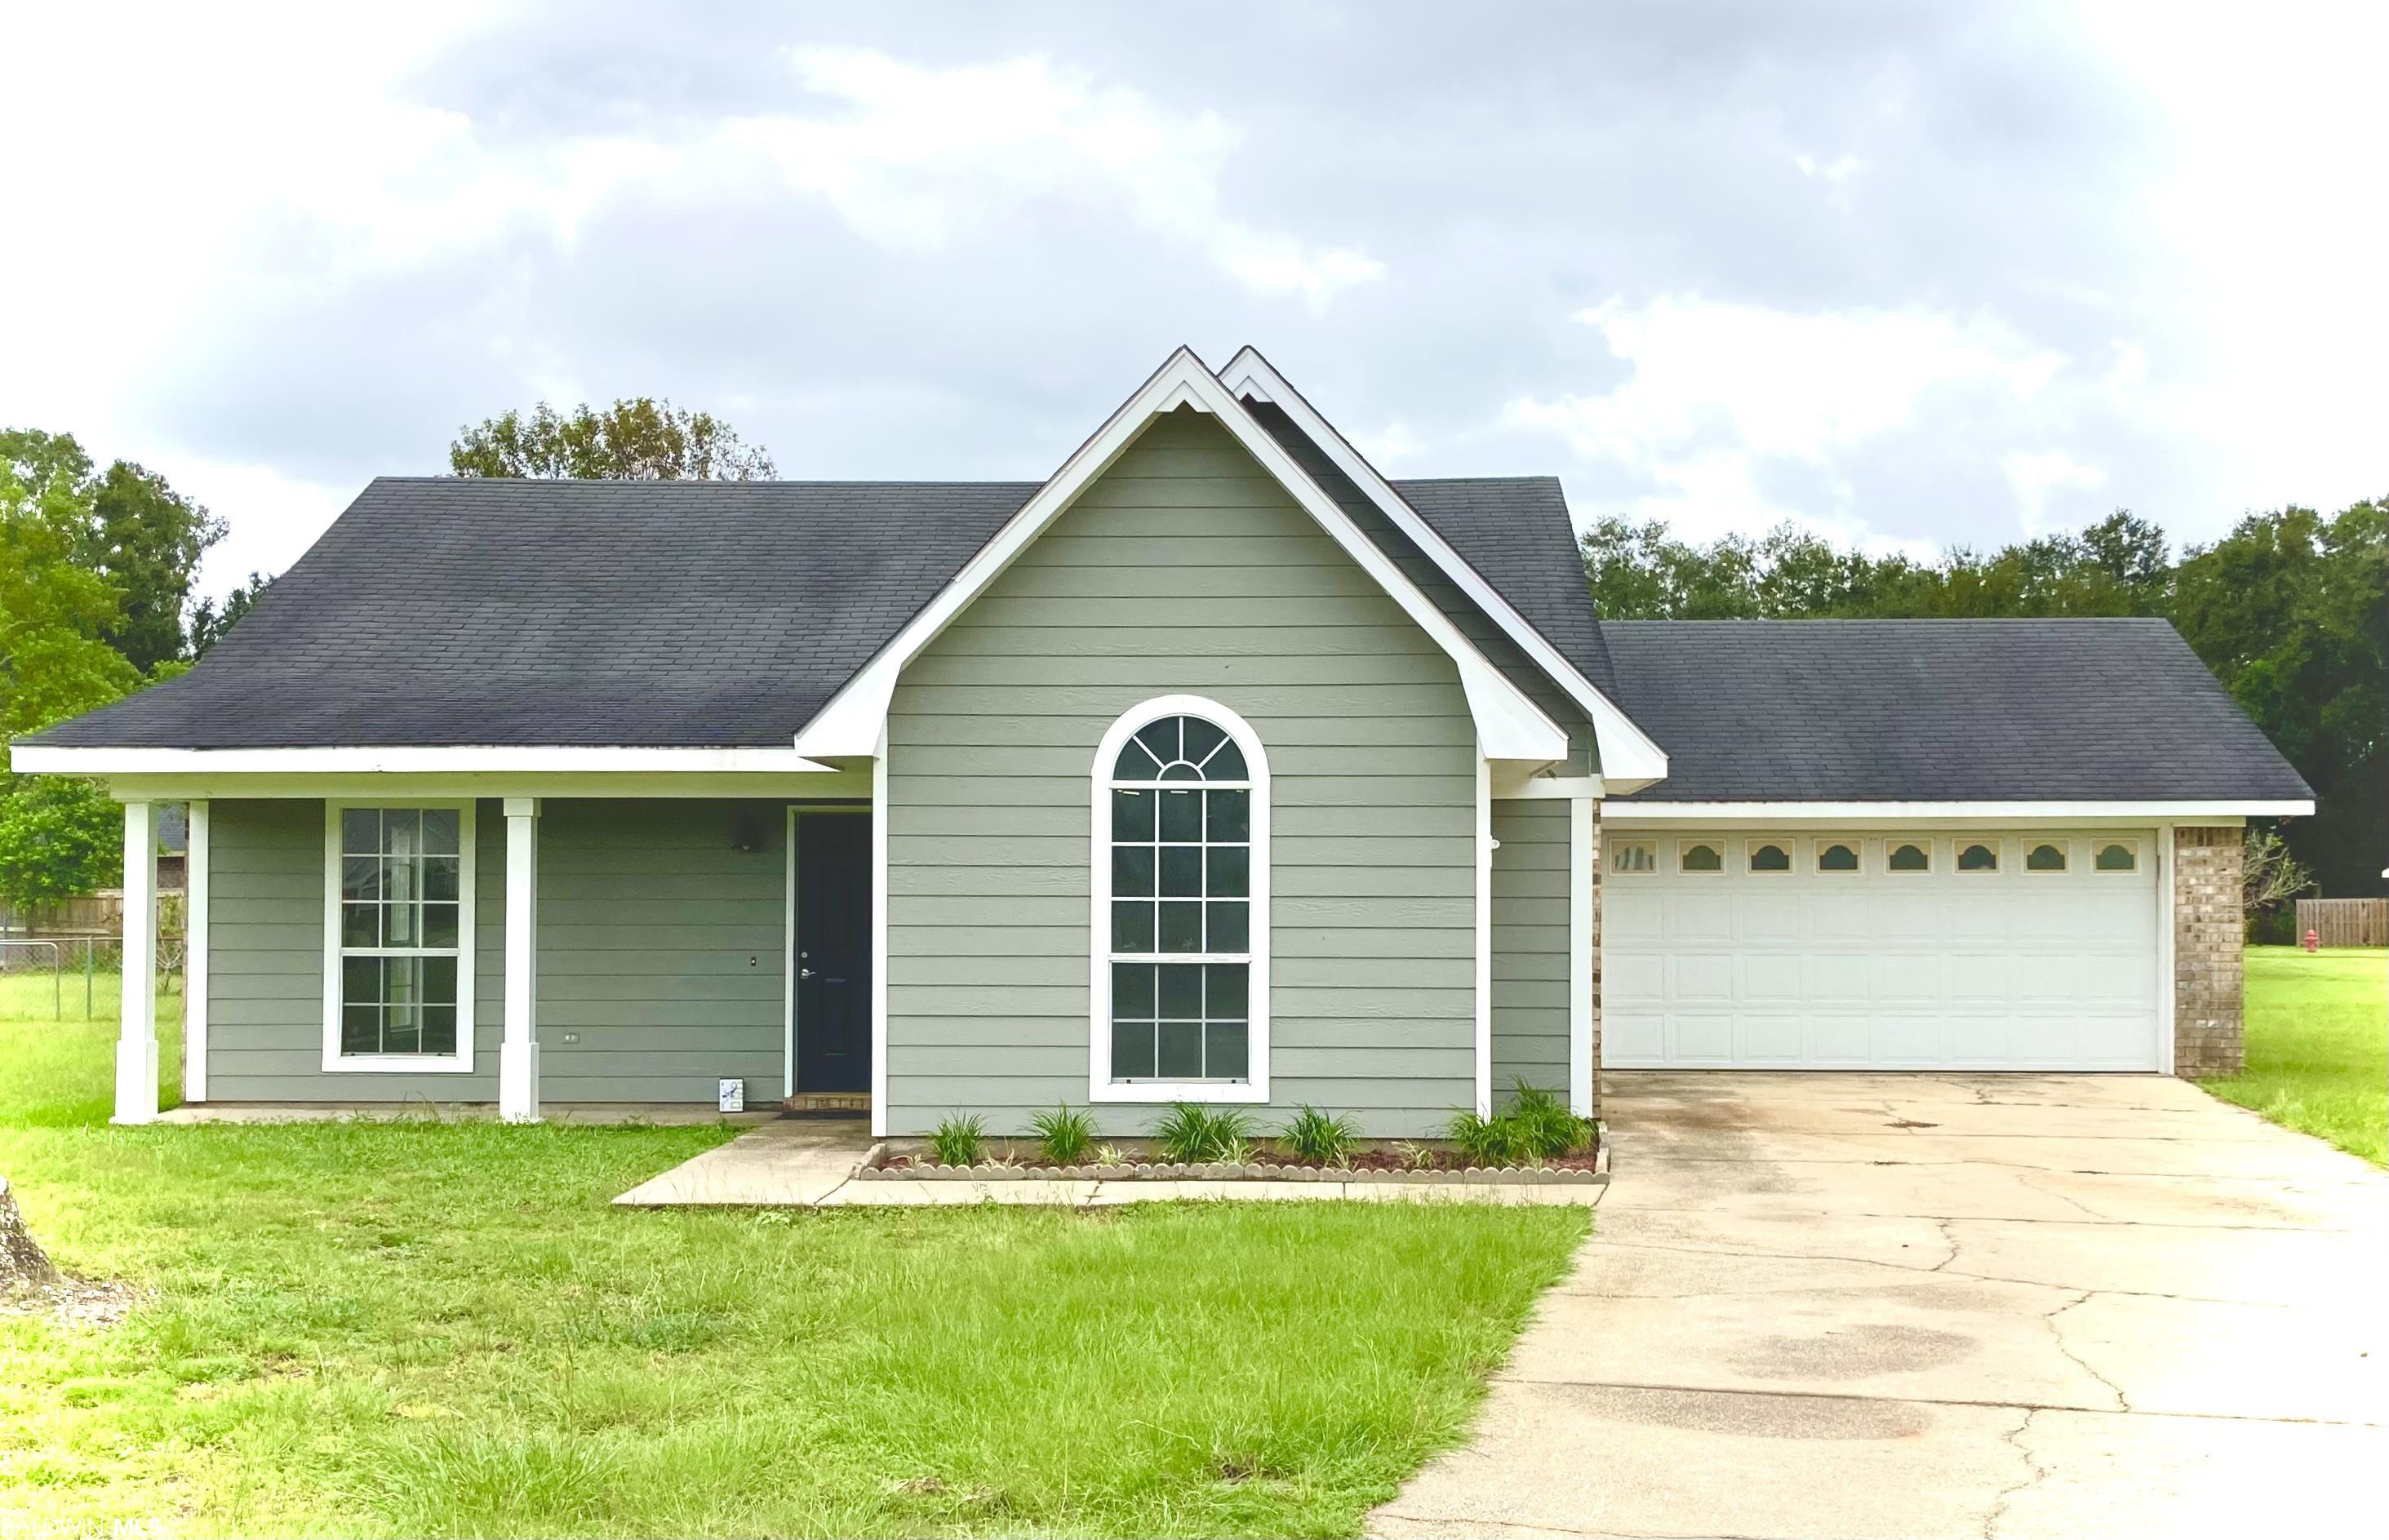 Nicely updated 3 bedroom / 2 bathroom Brick & Masonite home in Foley, Alabama, at the end of a culdesac! Neutral colors throughout. New flooring and freshly painted. NO CARPET. Large Fenced in Back Yard with Covered Patio. Attached, 2 Car Garage. Great Location: A mile +/- to the new OWA Theme Park, Restaurants, Tanger Outlet Mall, Less than 20 minutes to the Sugar Sands of Orange Beach / Gulf Shores, Gulf Coast Zoo, Jack Edwards National Airport, and approx 40 minutes NAS Pensacola!